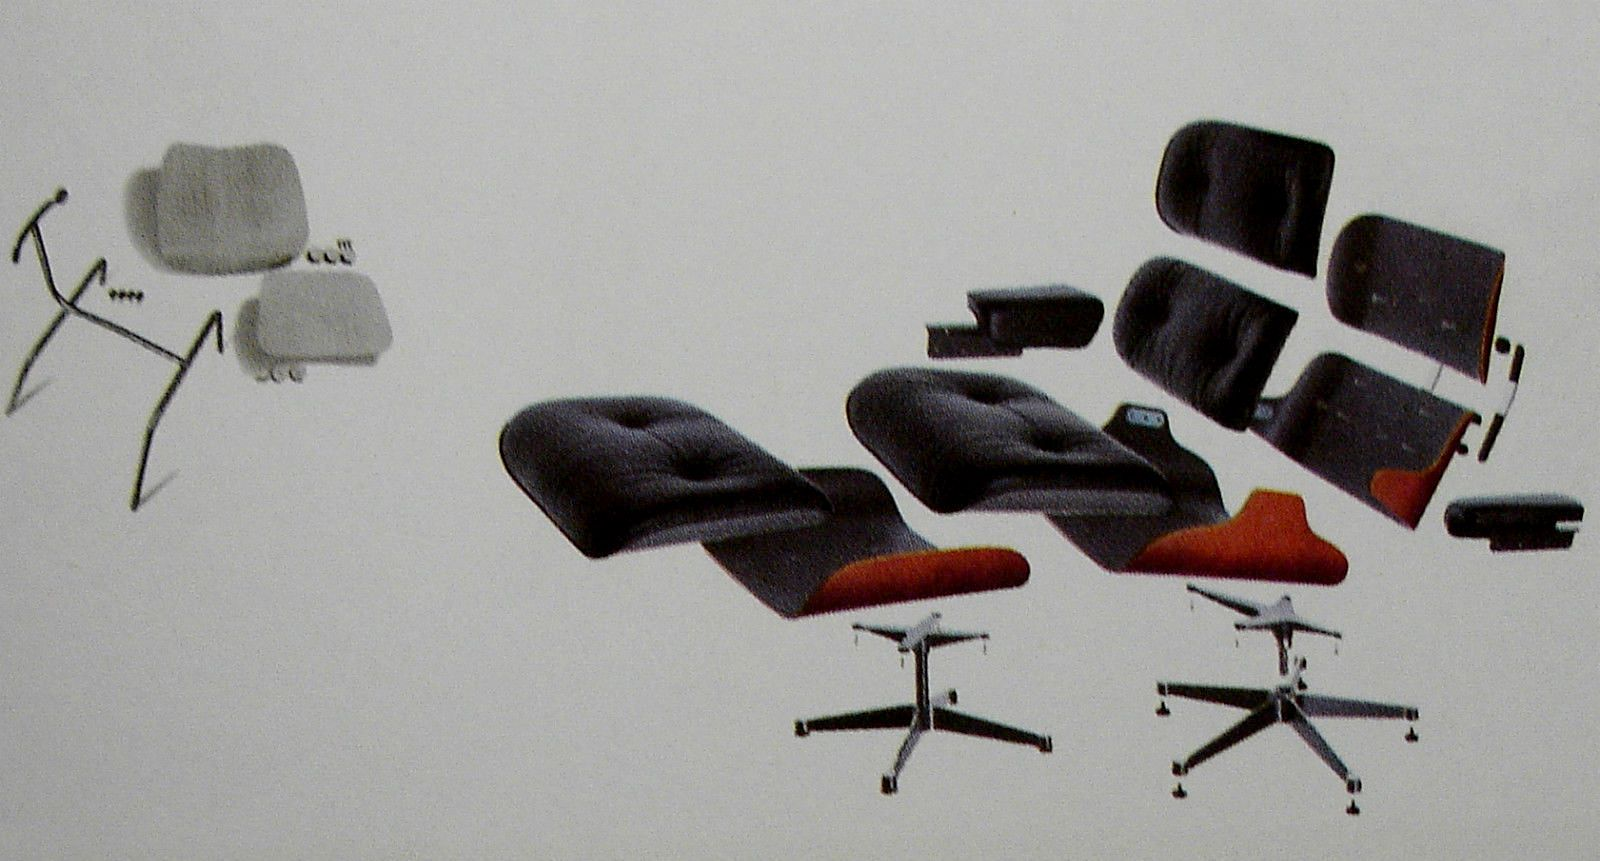 Eames Chair Drawing Exploded Views Of Vitra Eames Lounge Chair And Ottoman